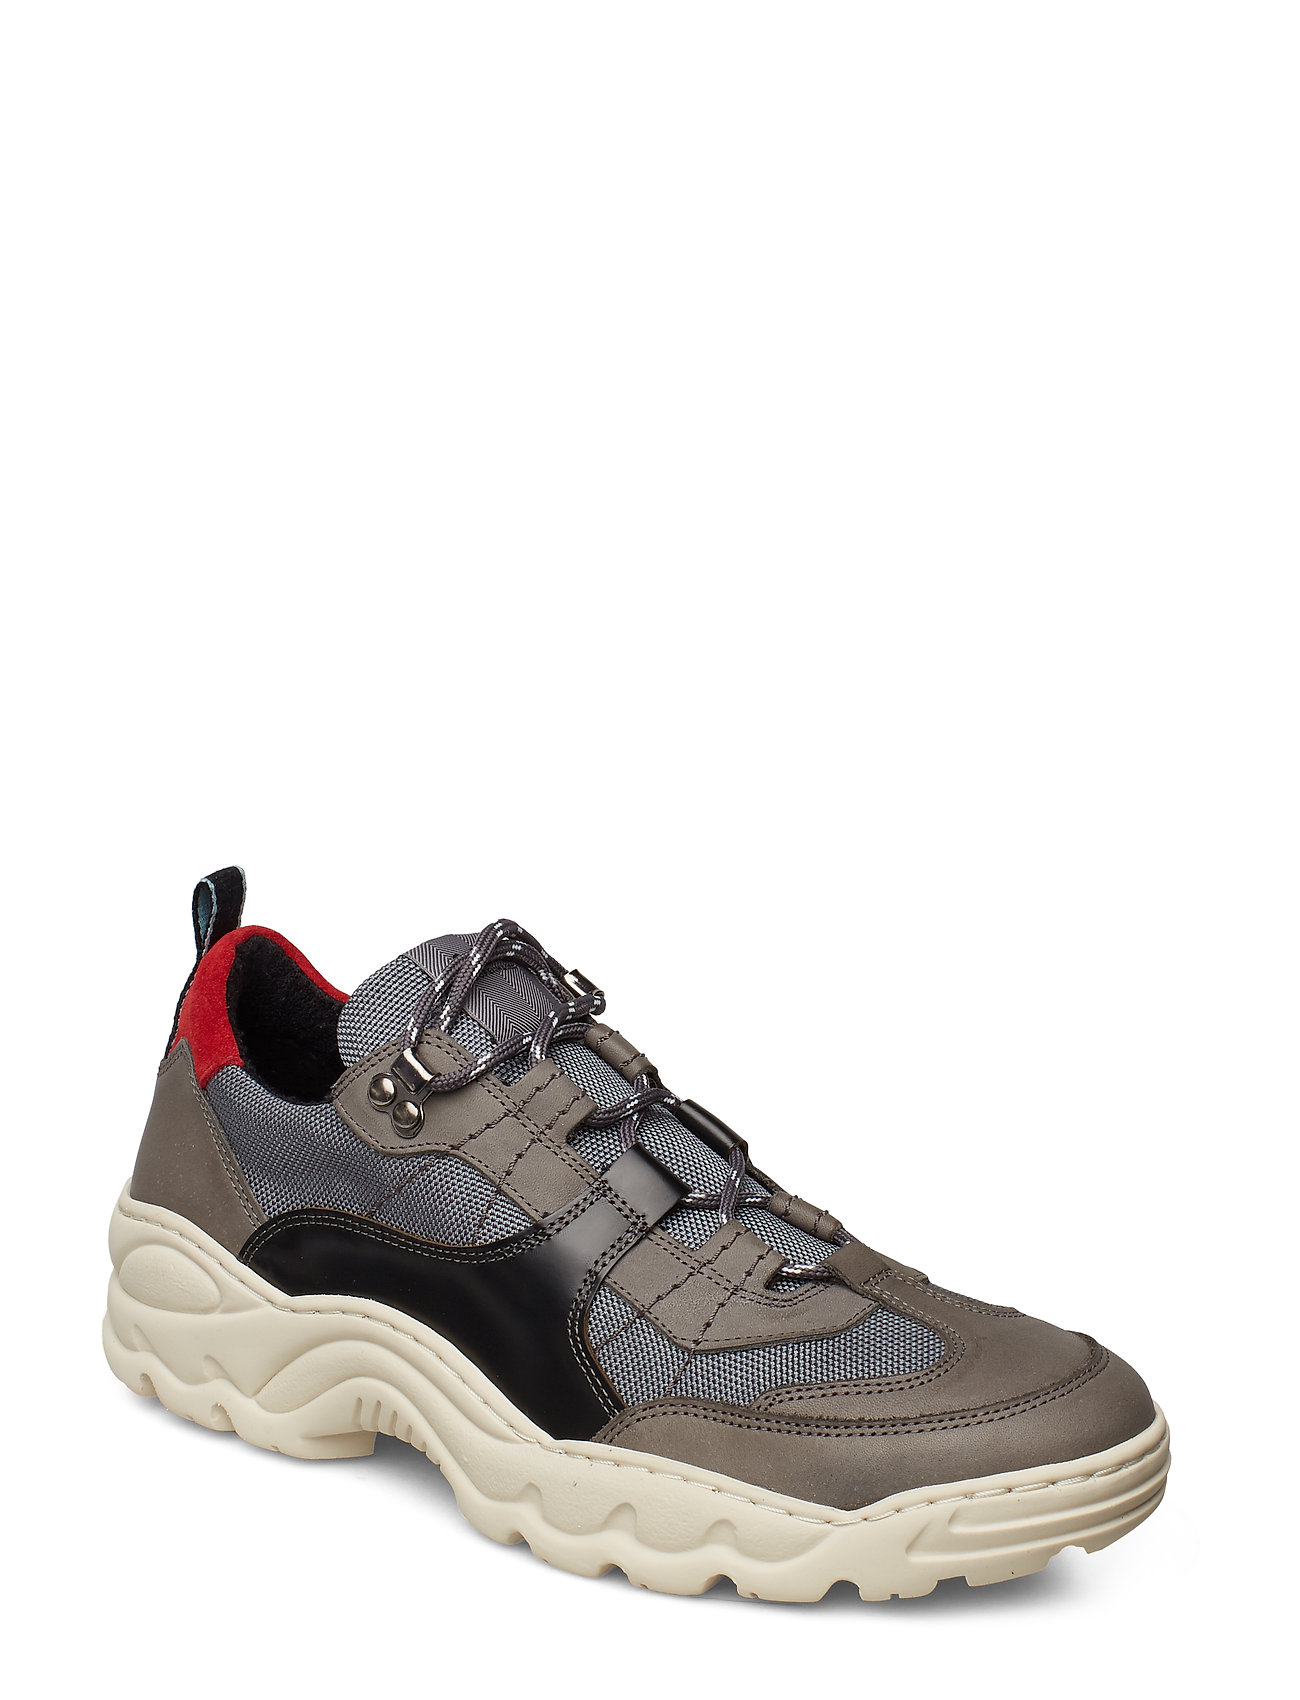 Image of Orbital L Low-top Sneakers Grå Shoe The Bear (3193758023)